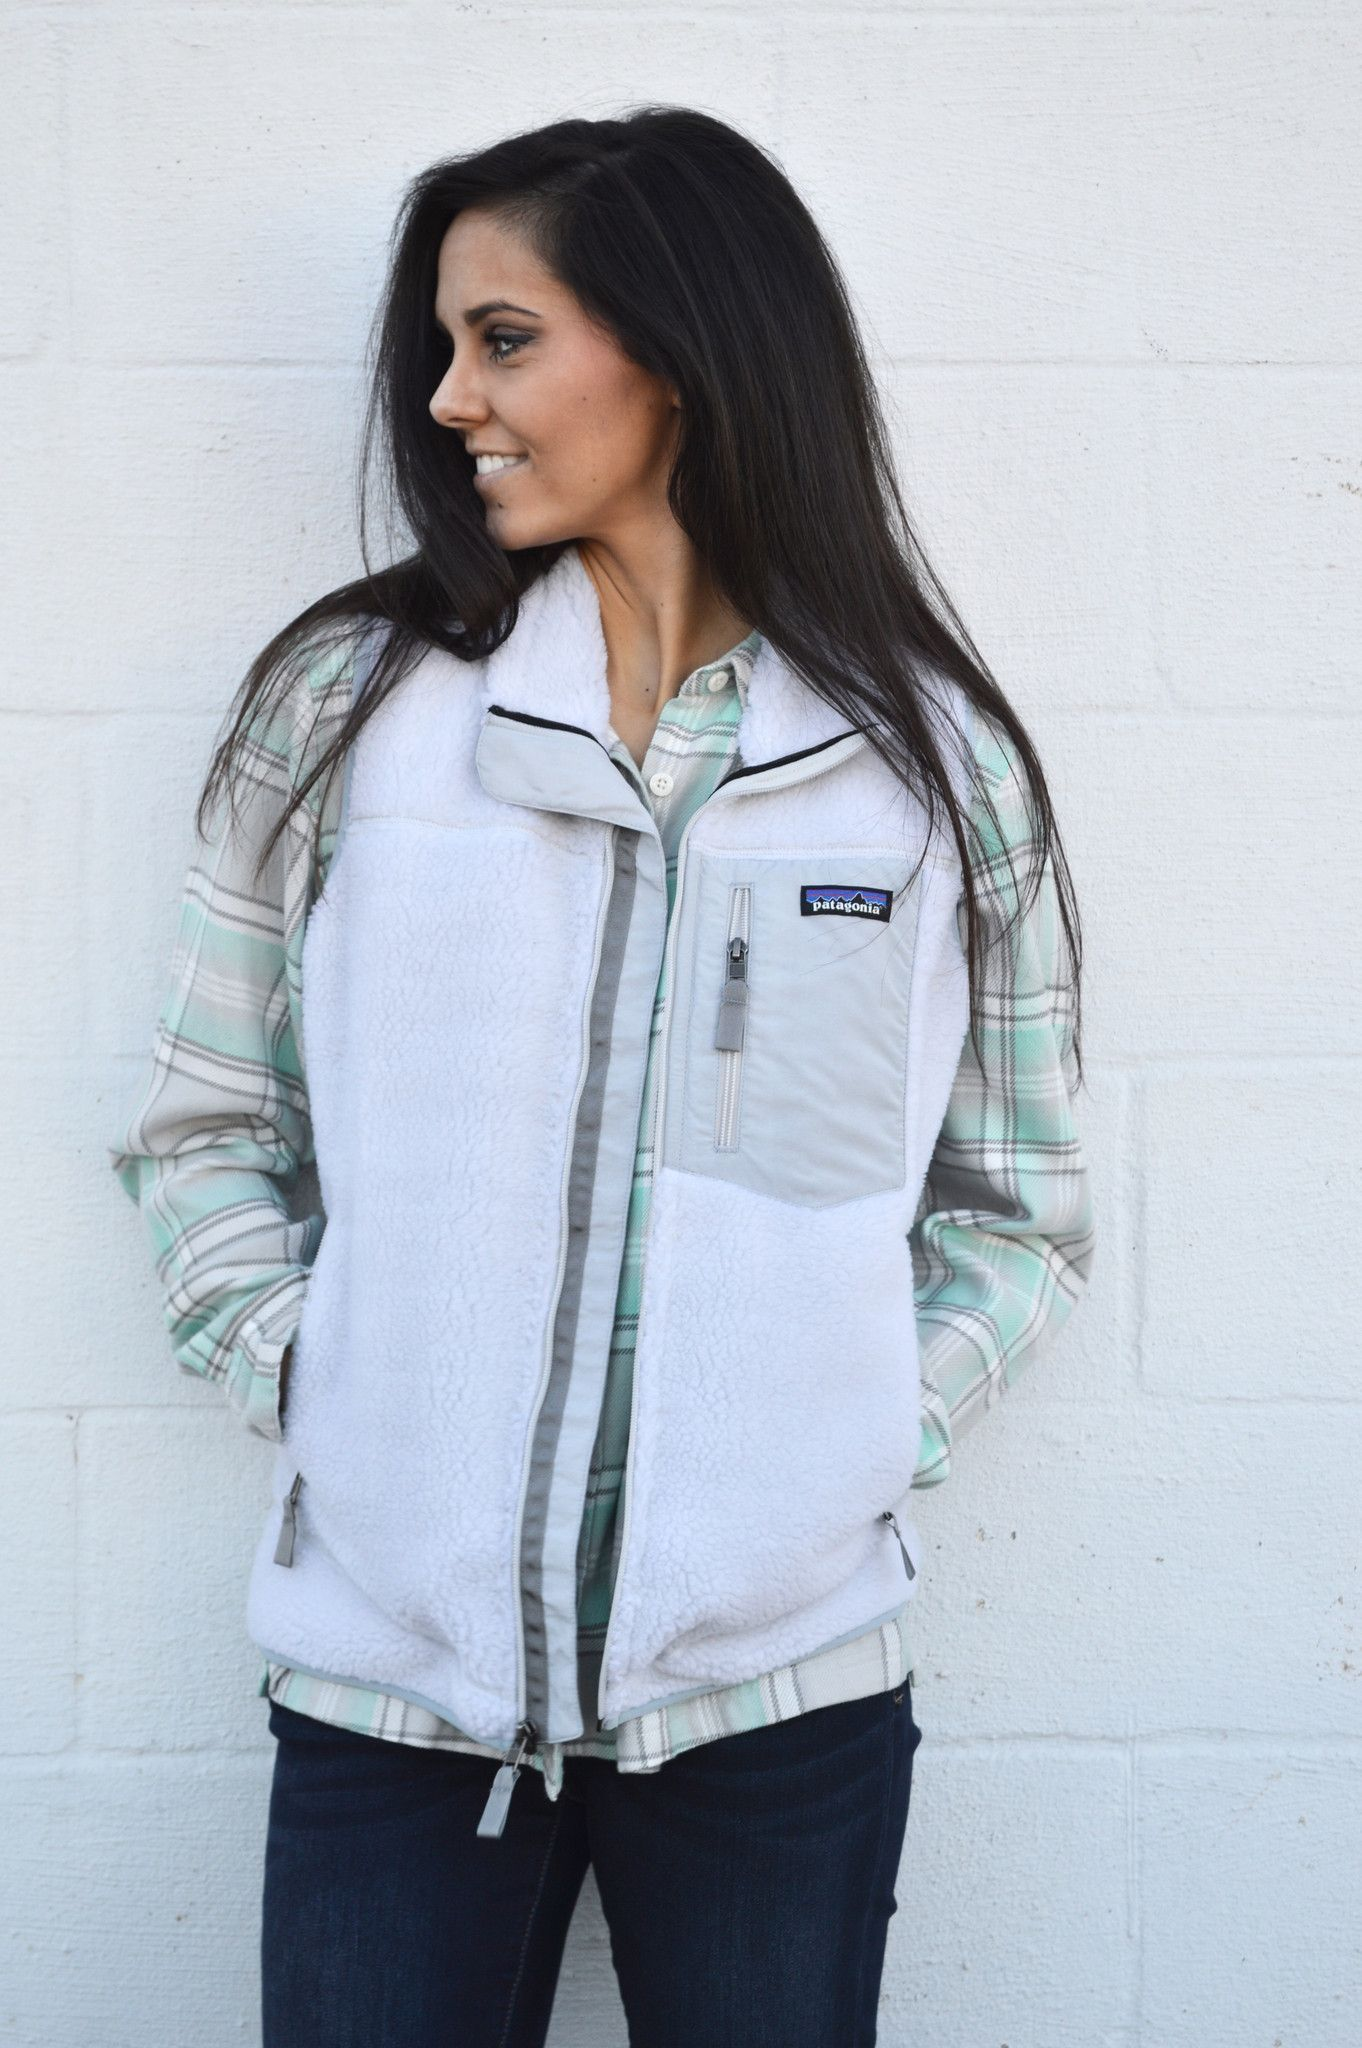 Vests tailored for women